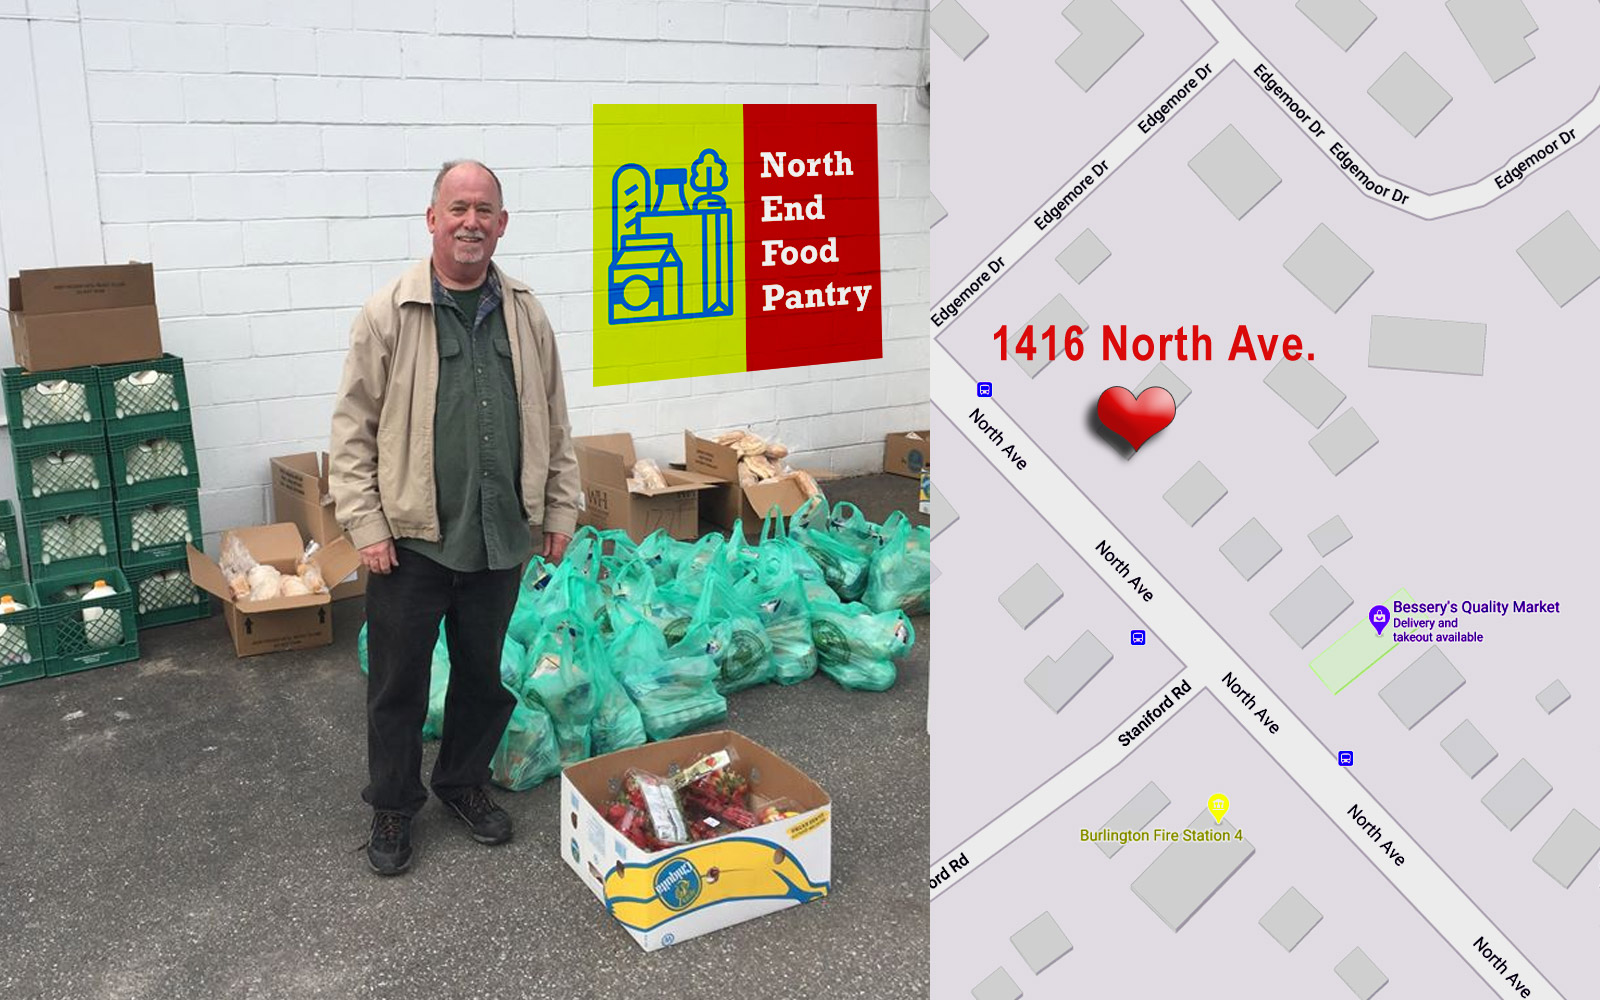 North End Food Pantry